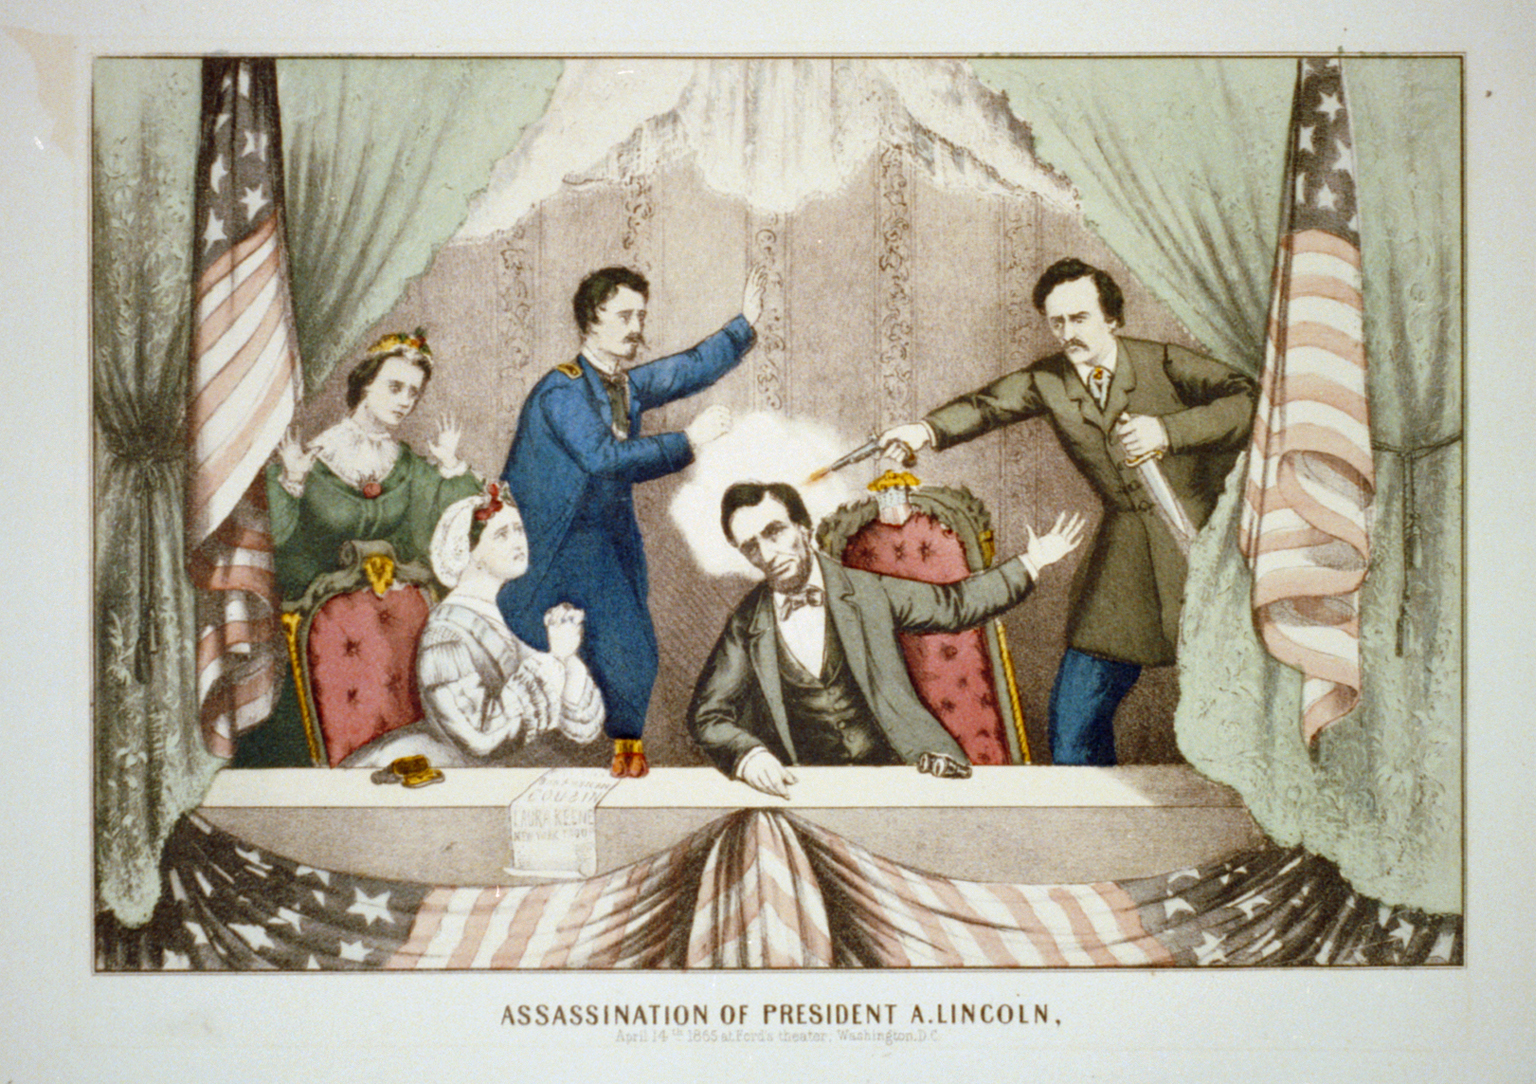 Print shows the president's box at Ford's Theater with John Wilkes Booth, on the right, shooting President Lincoln who is seated at the front of the box; on the left are Mary Todd Lincoln seated in the front, Major Henry Rathbone rising to stop Booth, and Clara Harris standing behind Mrs. Lincoln